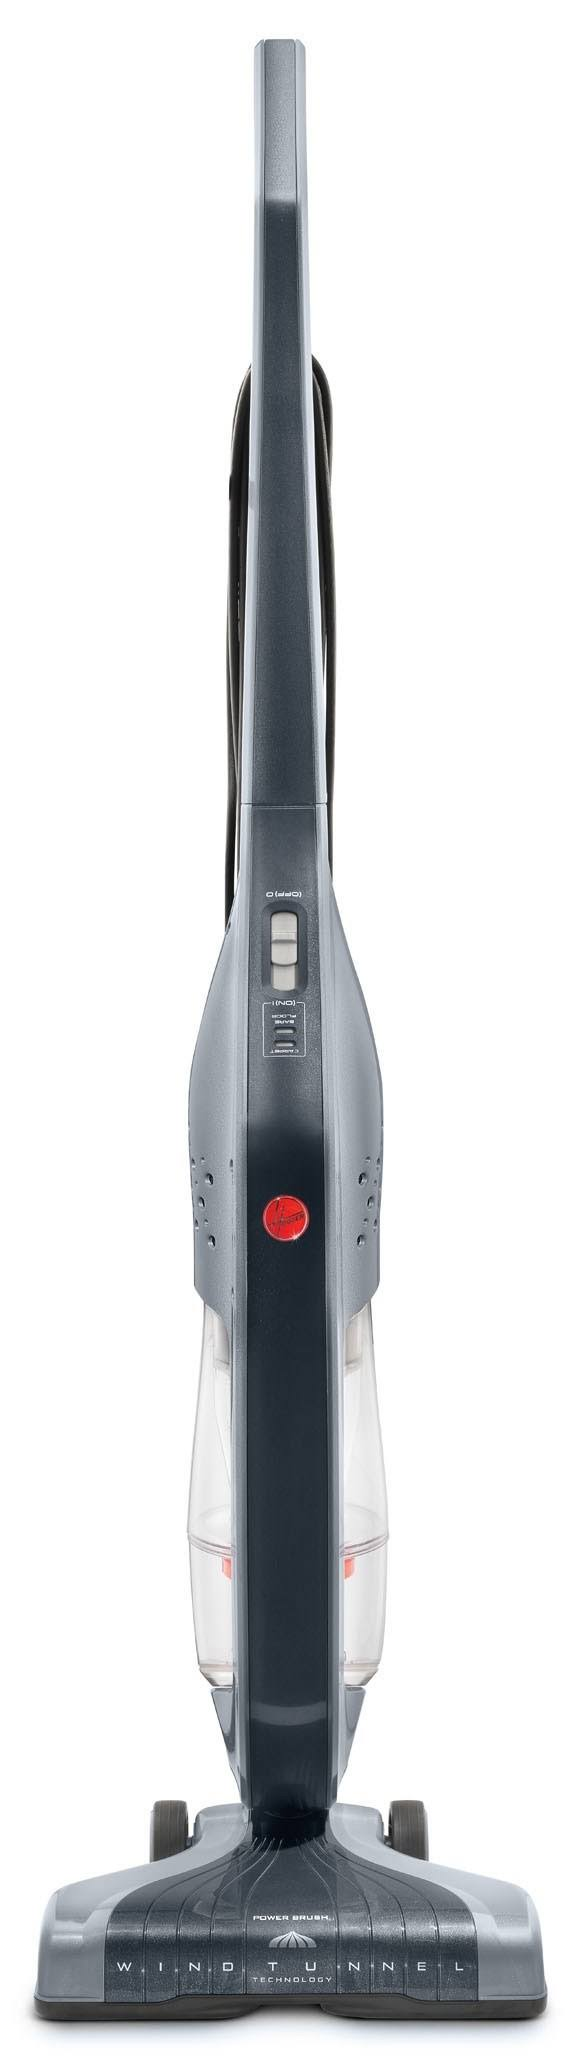 Hoover Sh20030 Corded Cyclonic Stick Vacuum